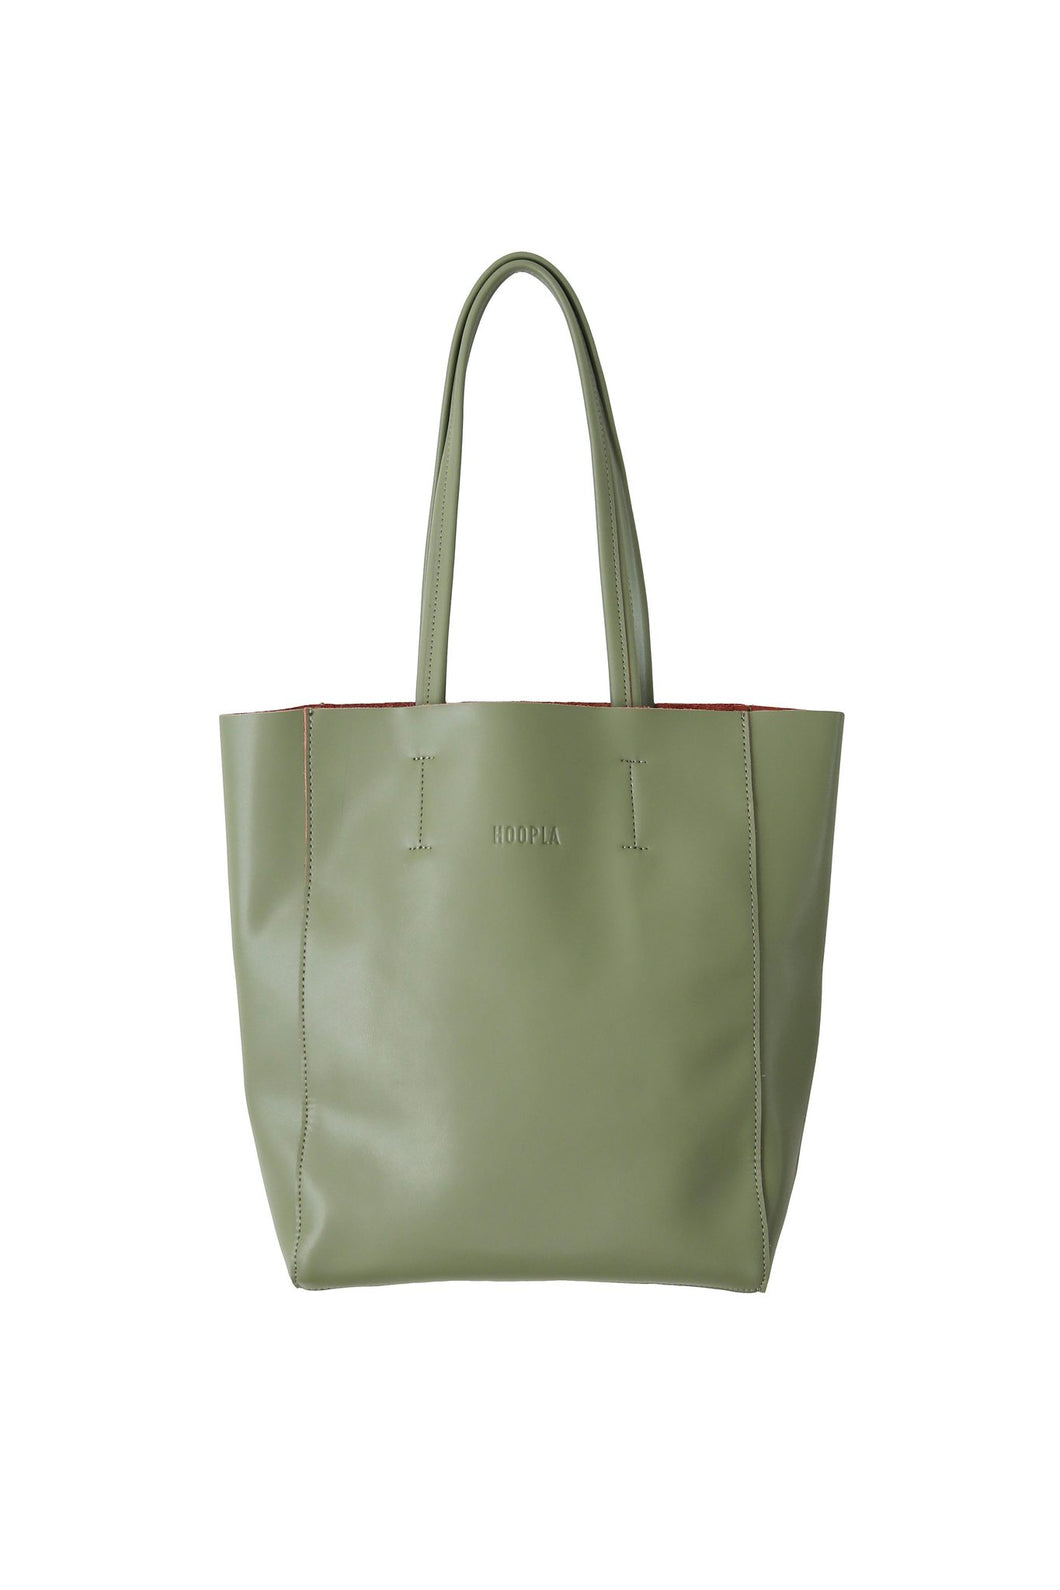 Small Tote Tote - Olive Green